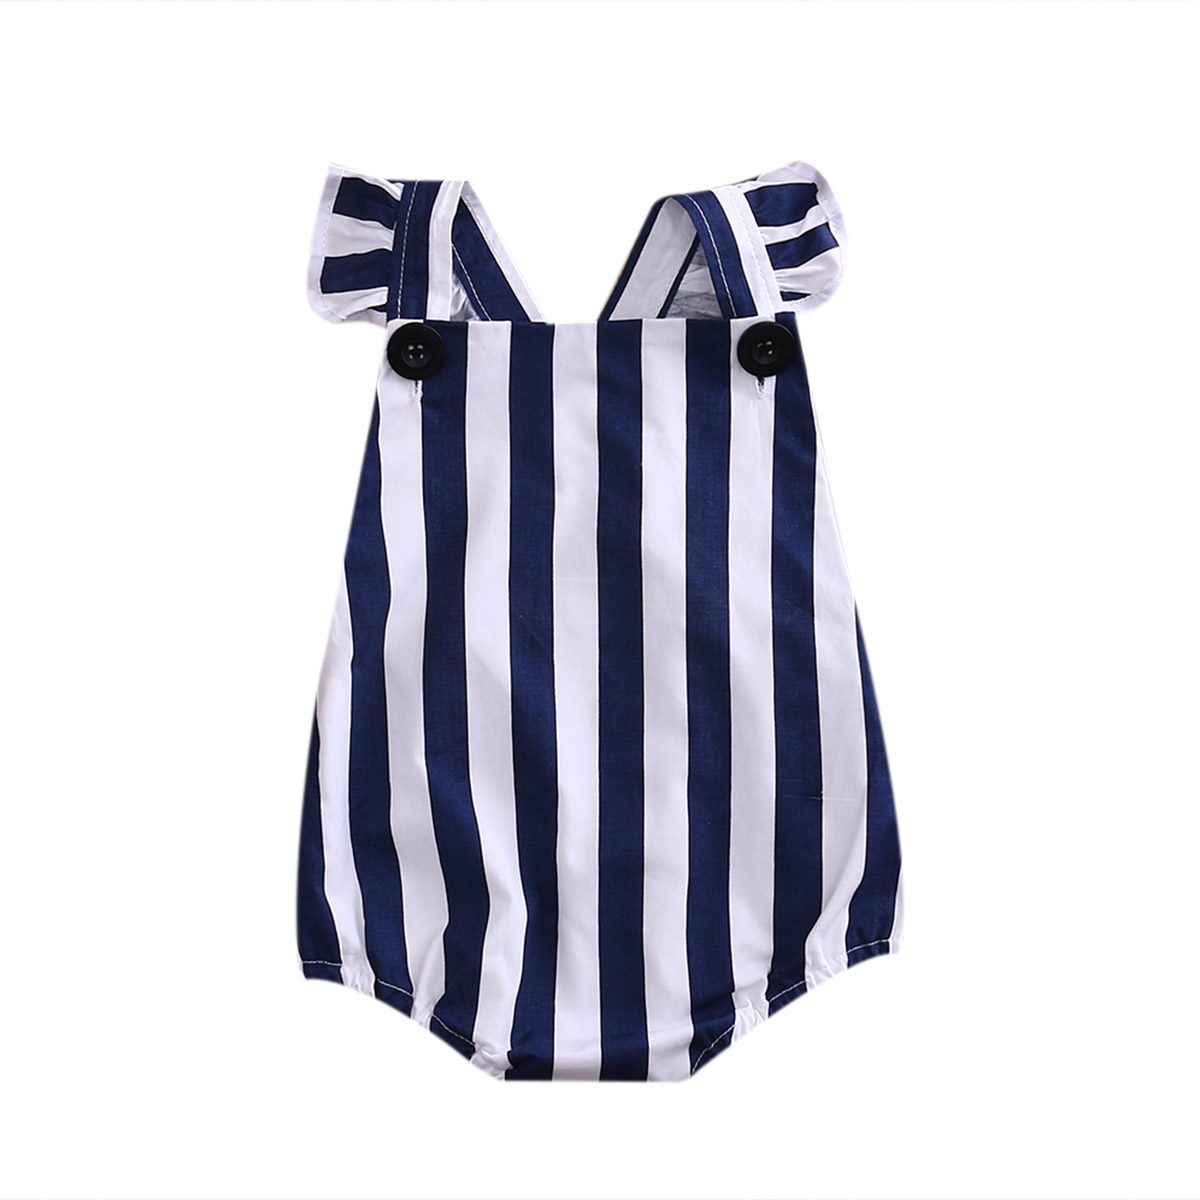 Cute Newborn Infant Baby Girls Striped Romper Jumsuit One Piece Outfit Set Cotton Clothes 0-24 Months pudcoco newborn infant baby girls clothes short sleeve floral romper headband summer cute cotton one piece clothes